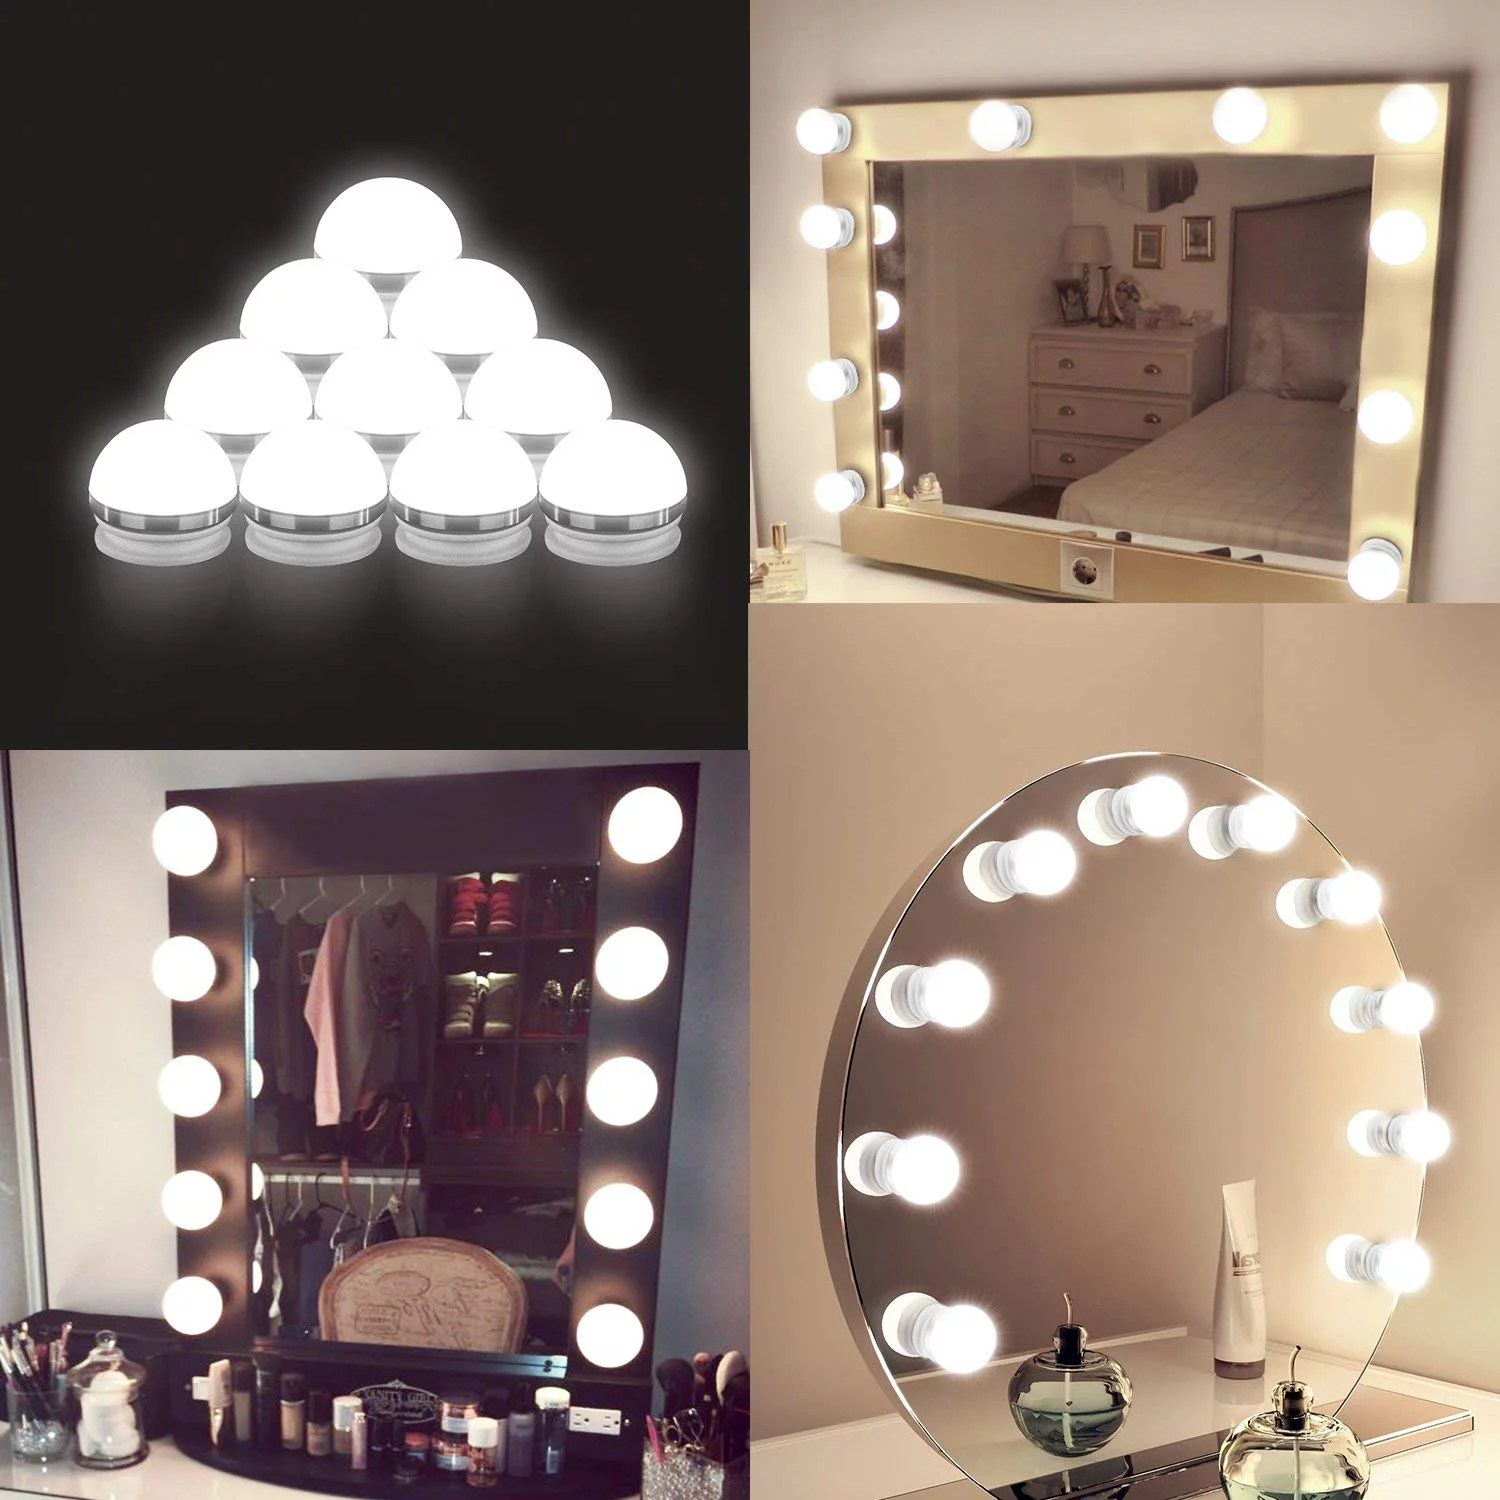 coolmade vanity lights kit hollywood style makeup light bulbs with stickers attached to bathroom wall or dressing table mirrors with dimmable switch